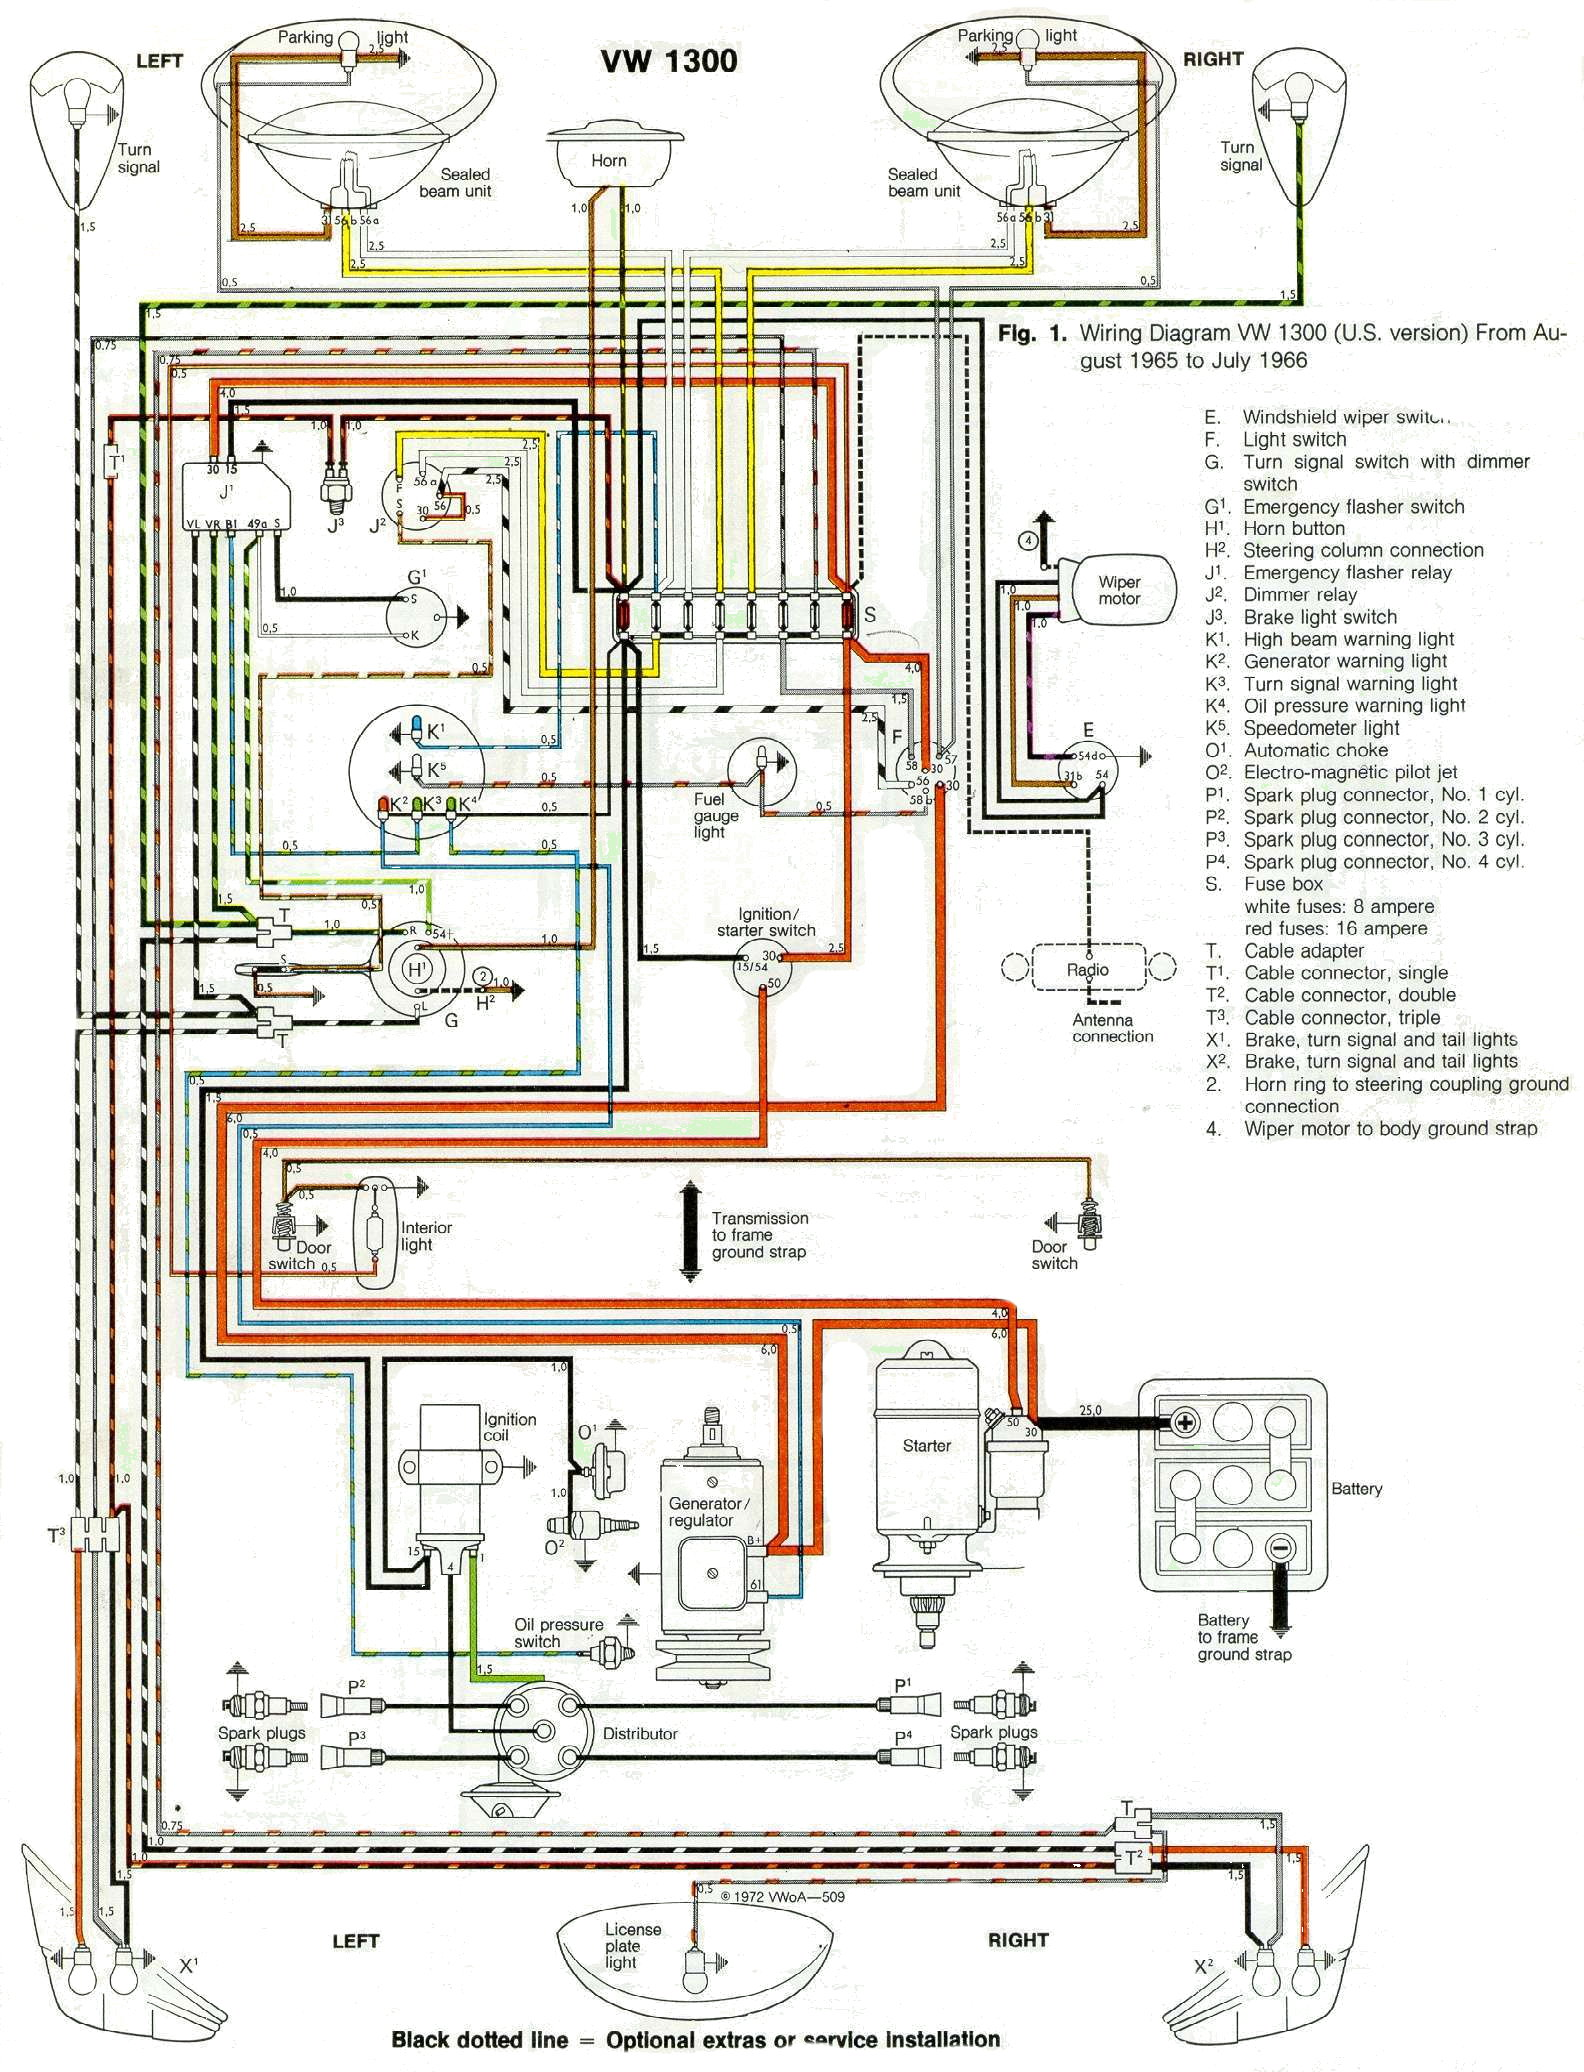 1966 Wiring 1966 wiring diagram vw bug wiring diagram at soozxer.org